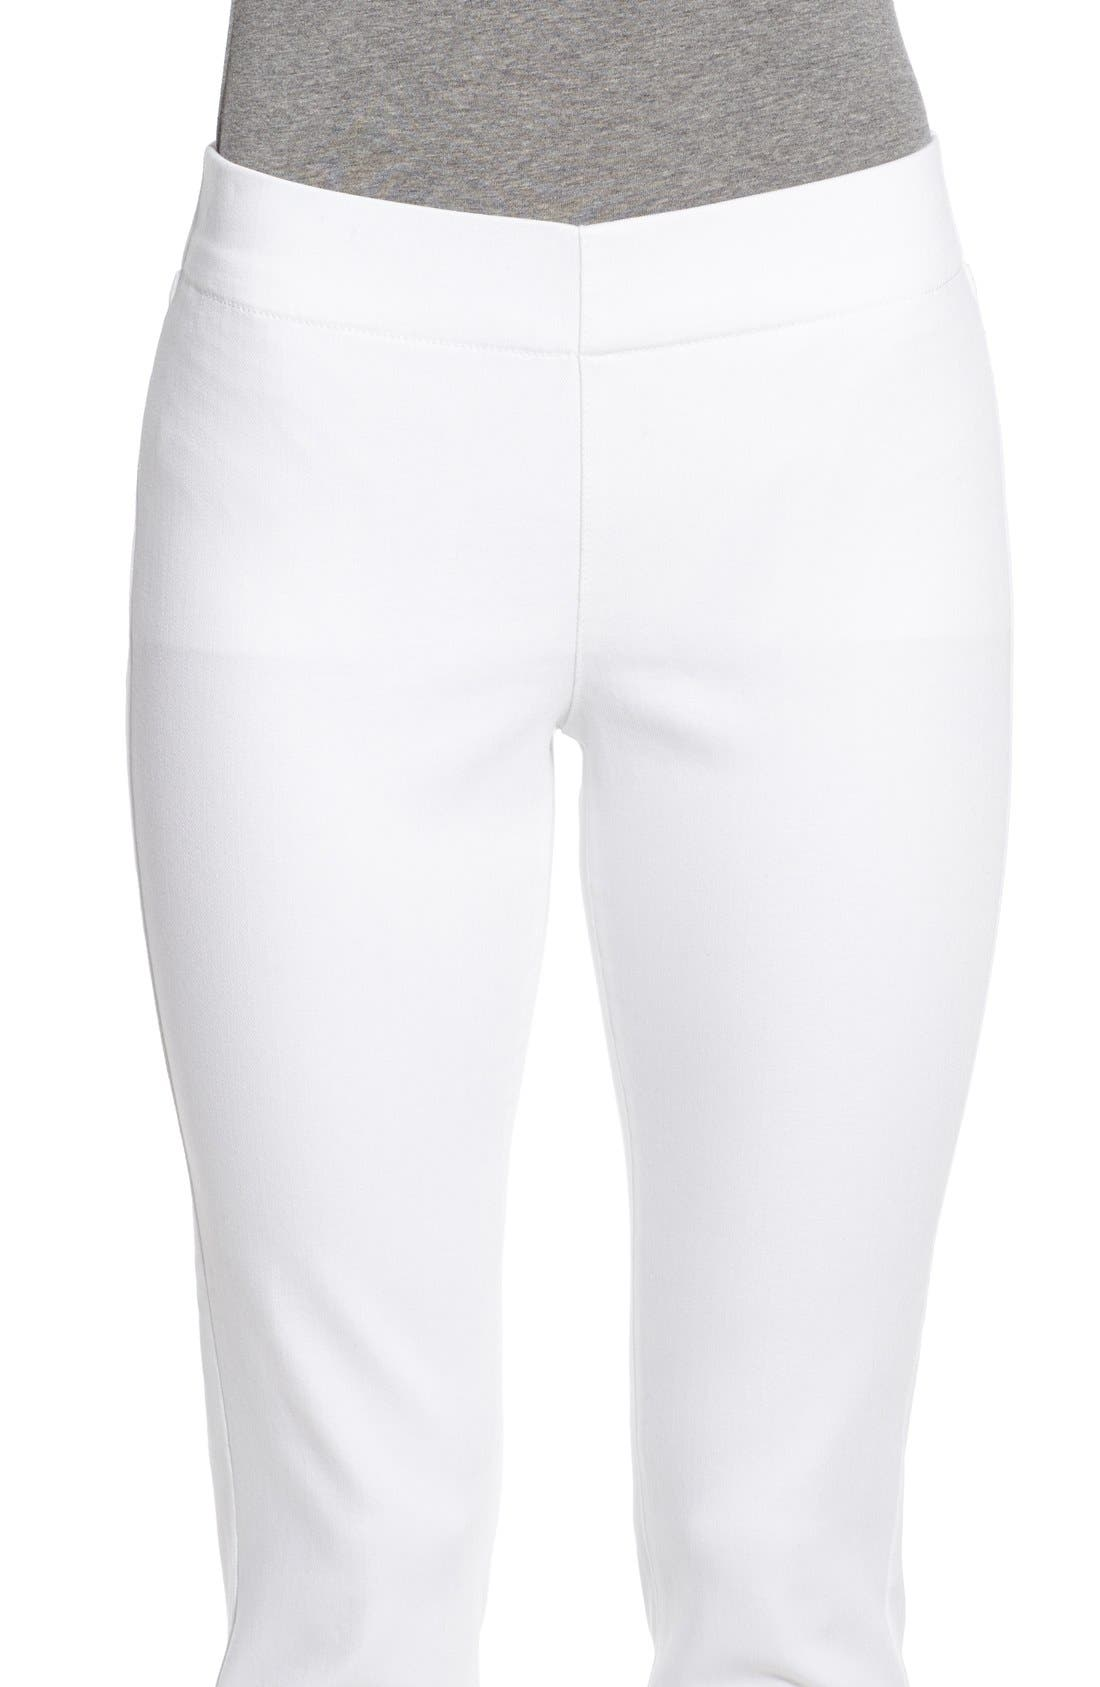 Alternate Image 4  - NYDJ 'Millie' Pull-On Stretch Ankle Skinny Jeans (Endless White) (Regular & Petite)